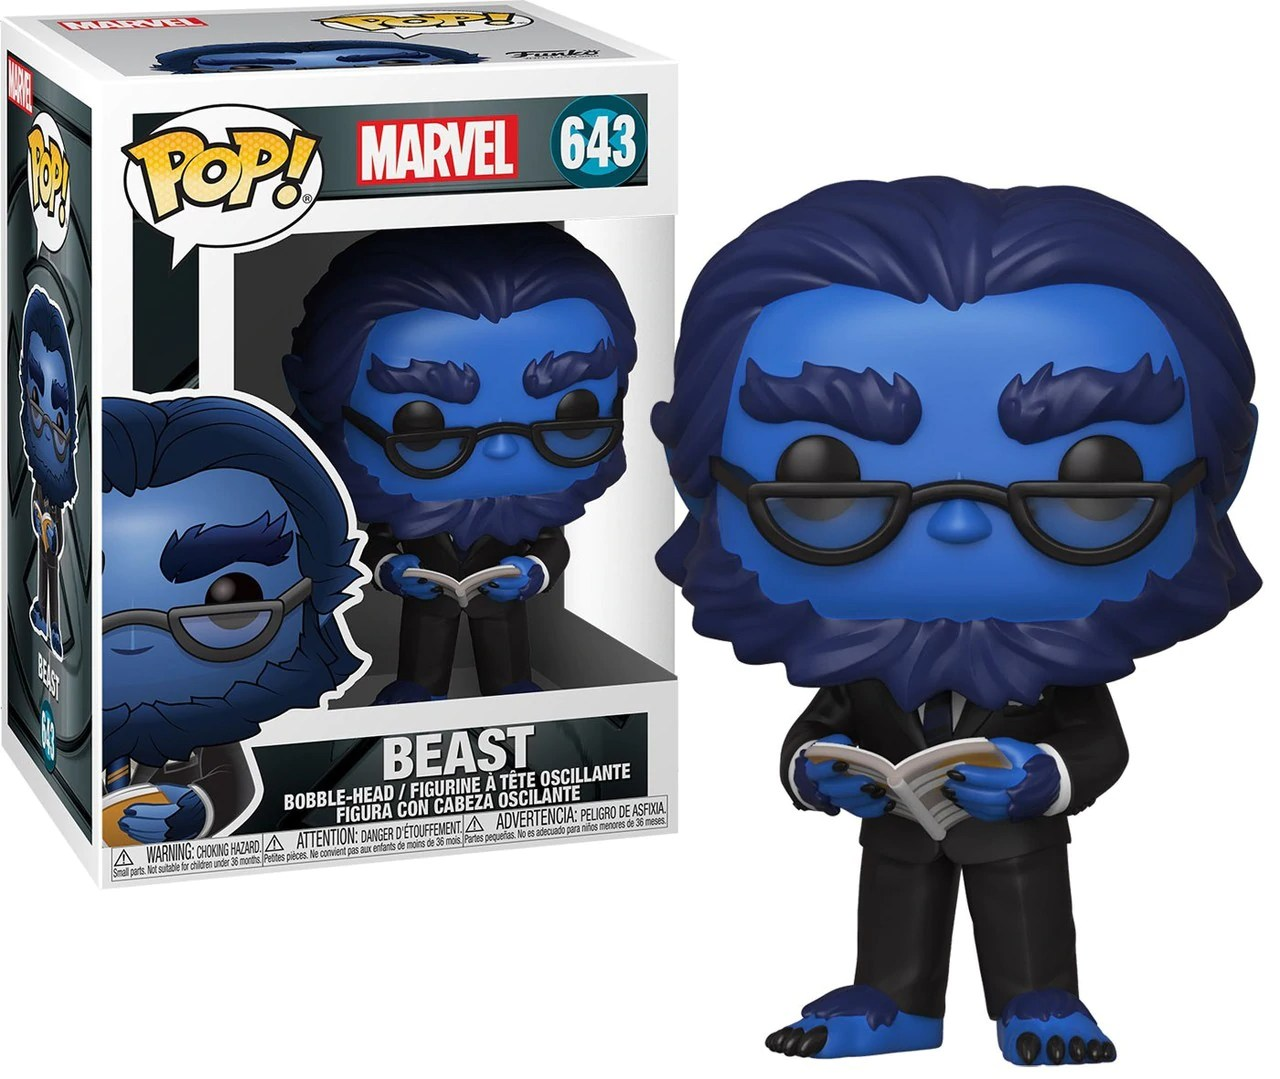 Funko Pop! Fera (Beast) Flocked Marvel: X-Men O Filme Aniversário 20 Anos (X-Men 20th Anniversary)  #643 - Funko